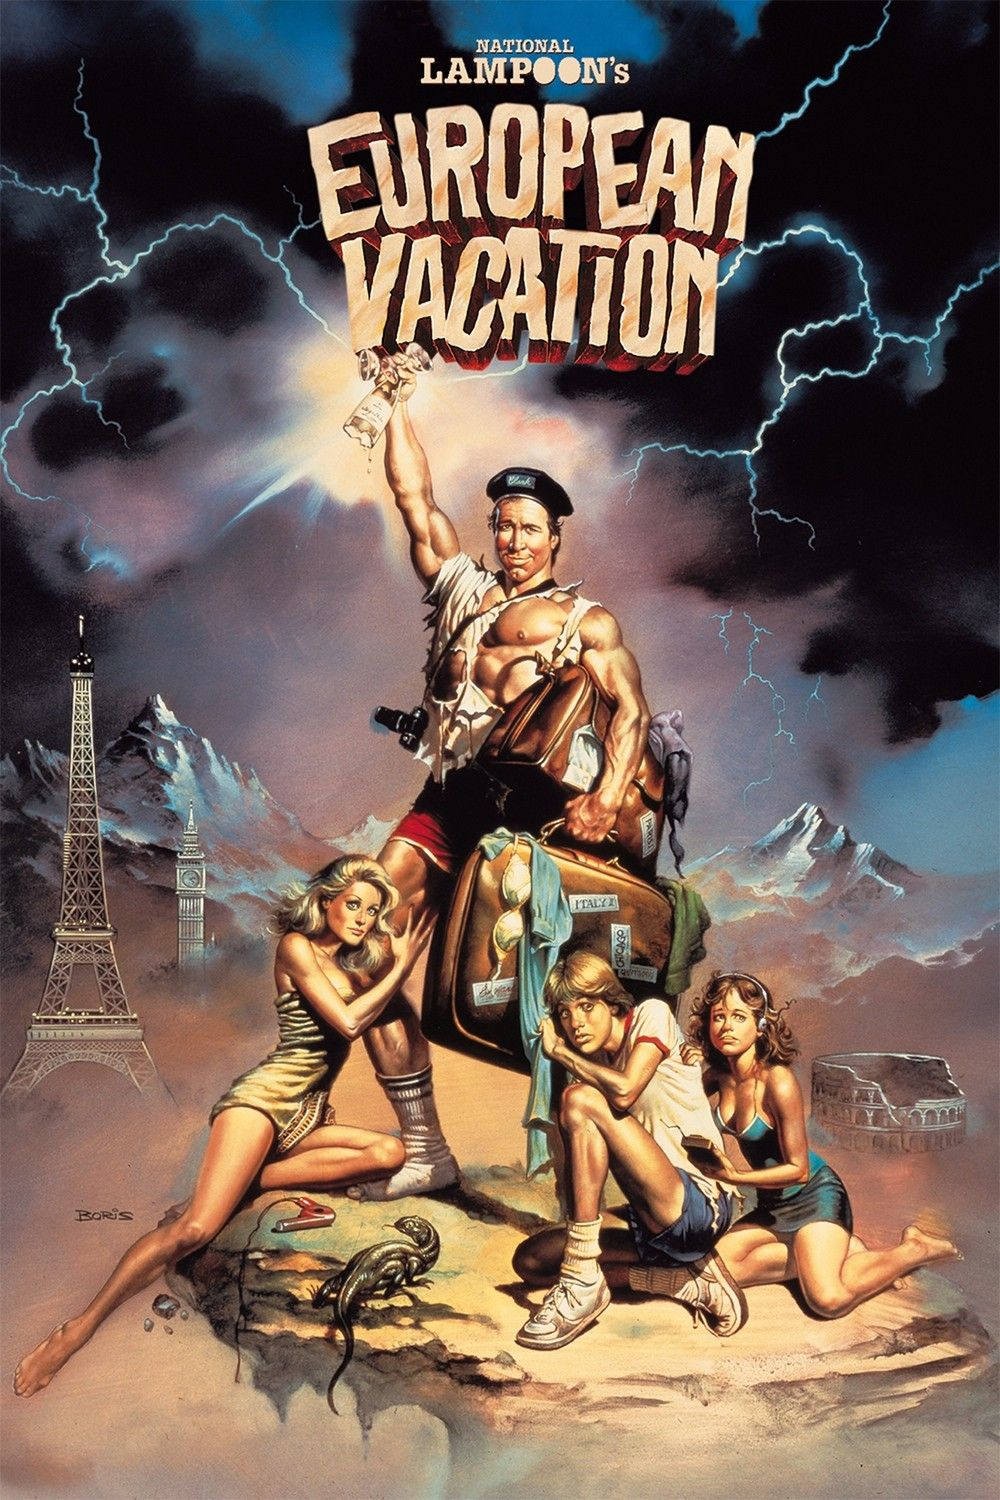 National Lampoon's European Vacation (1985) Chevy Chase